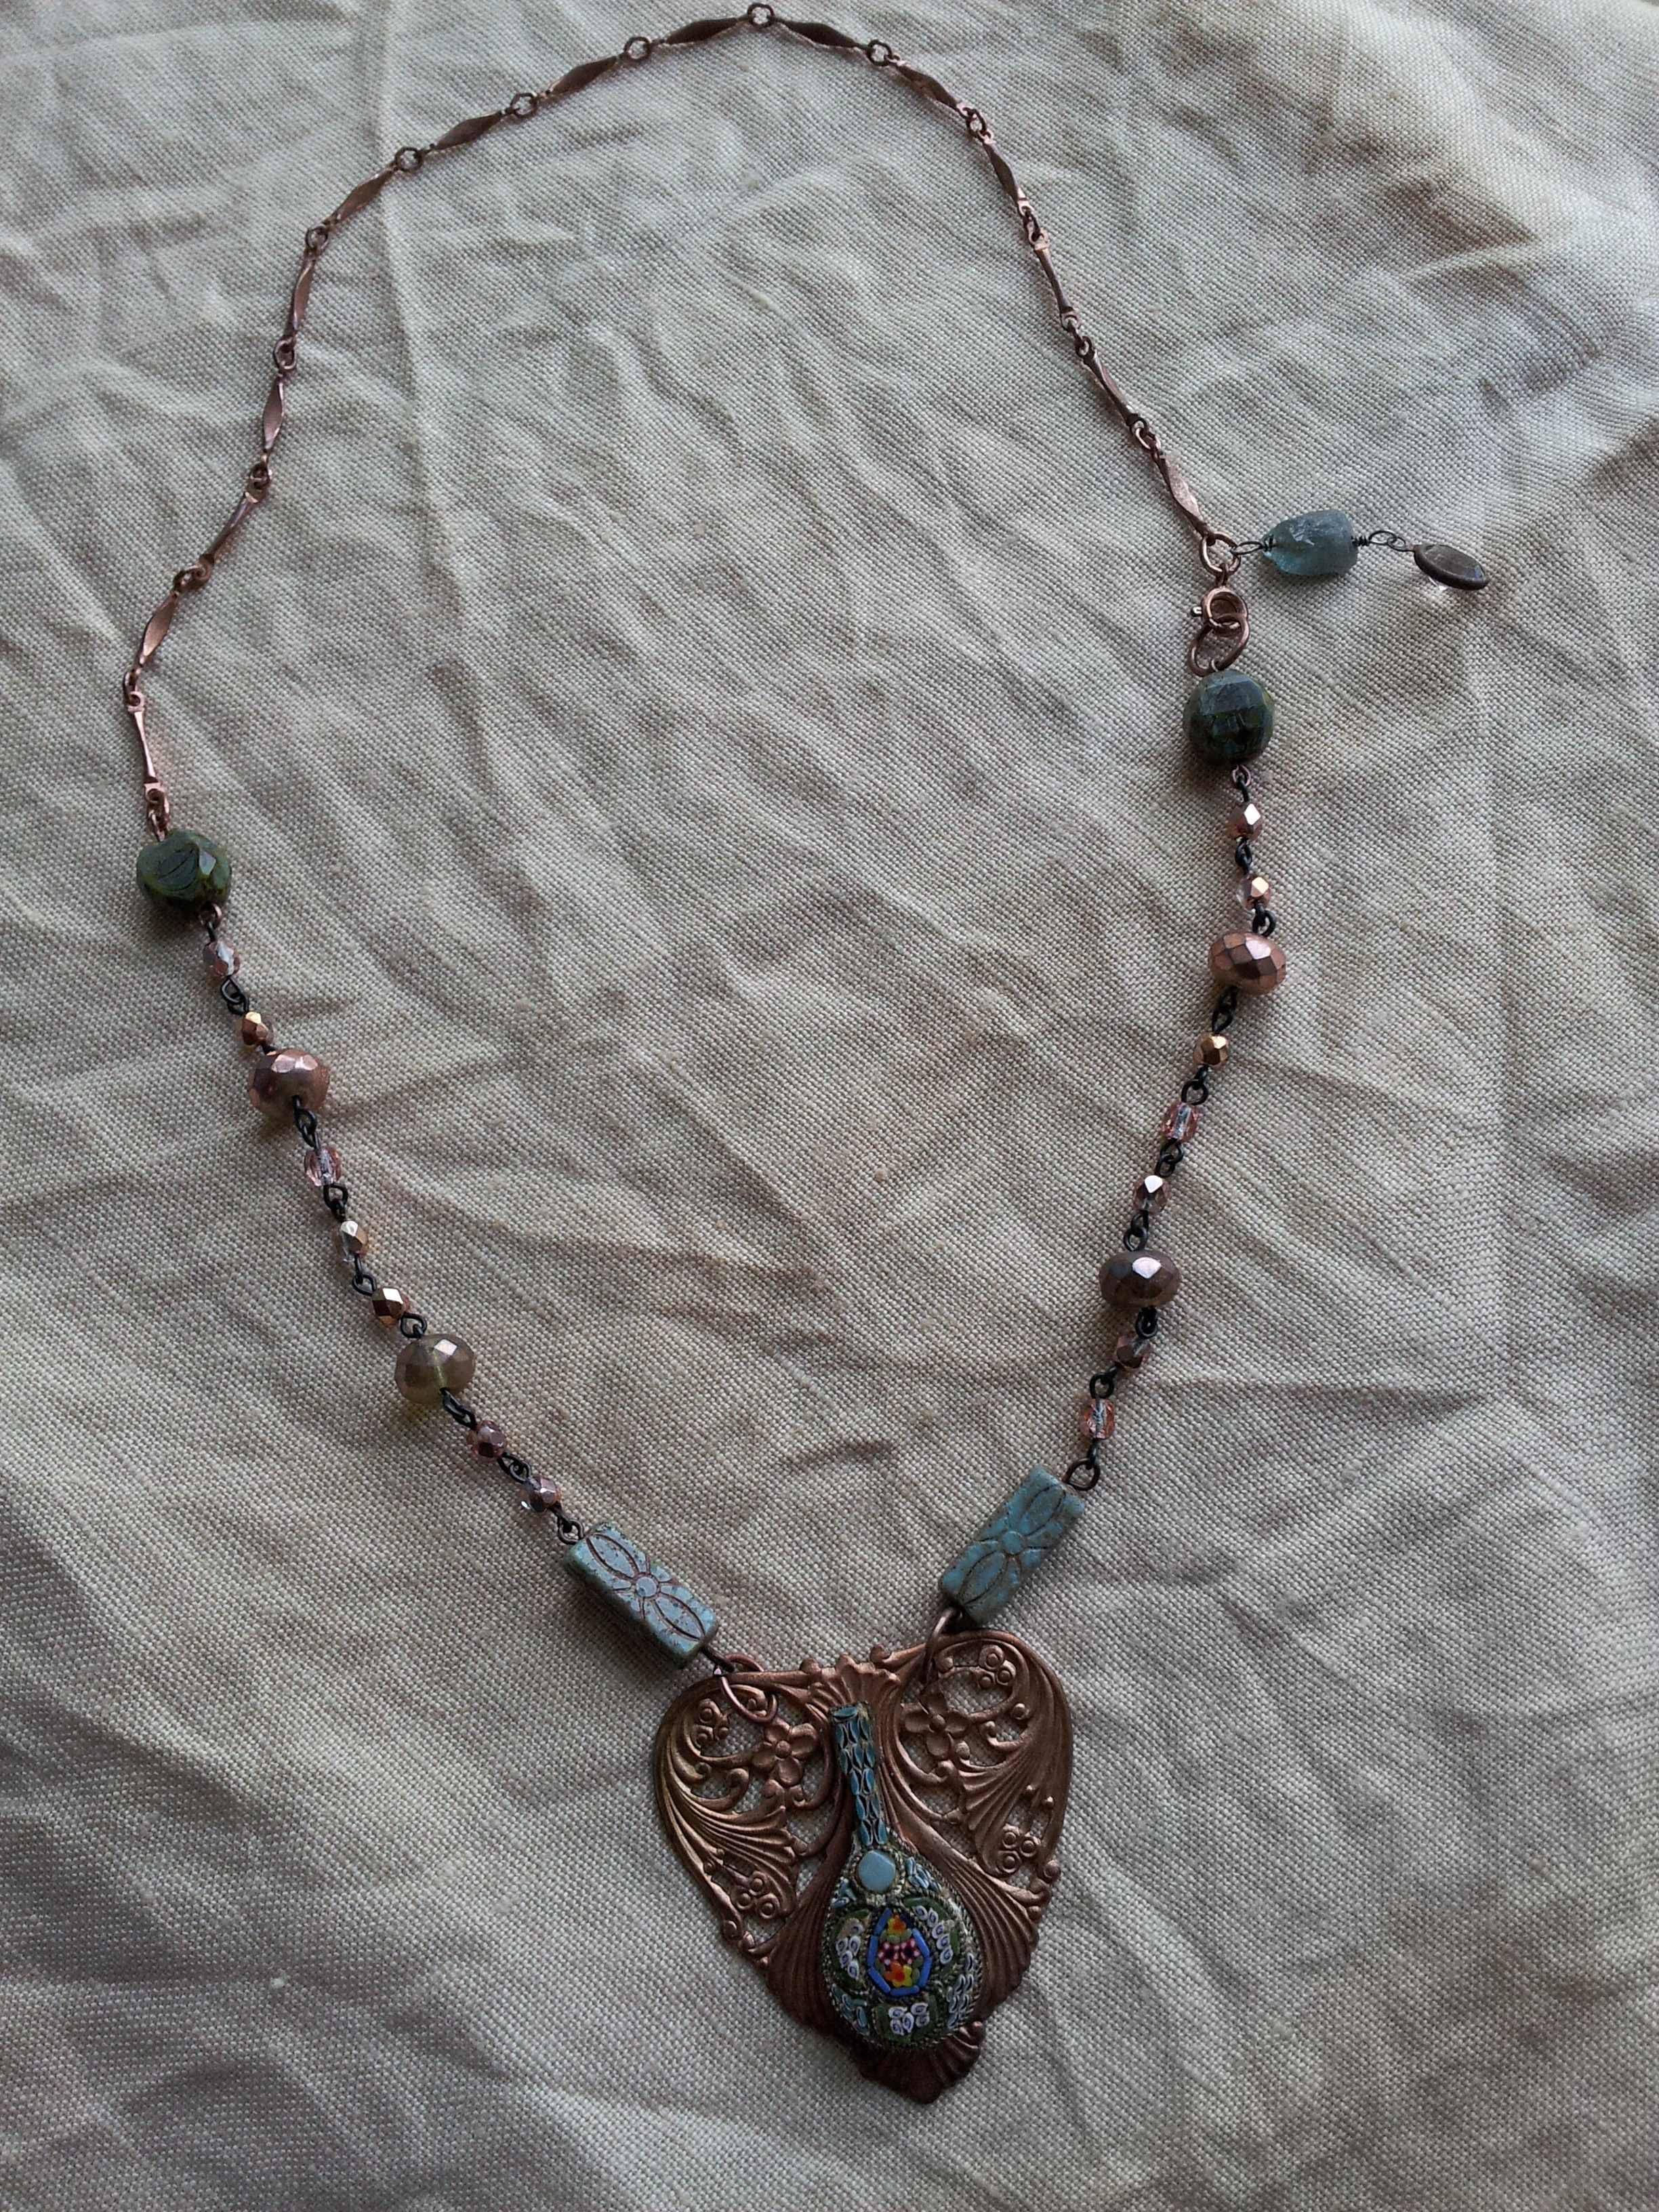 Copper and micro-mosaic with Czech glass beads - June 2014